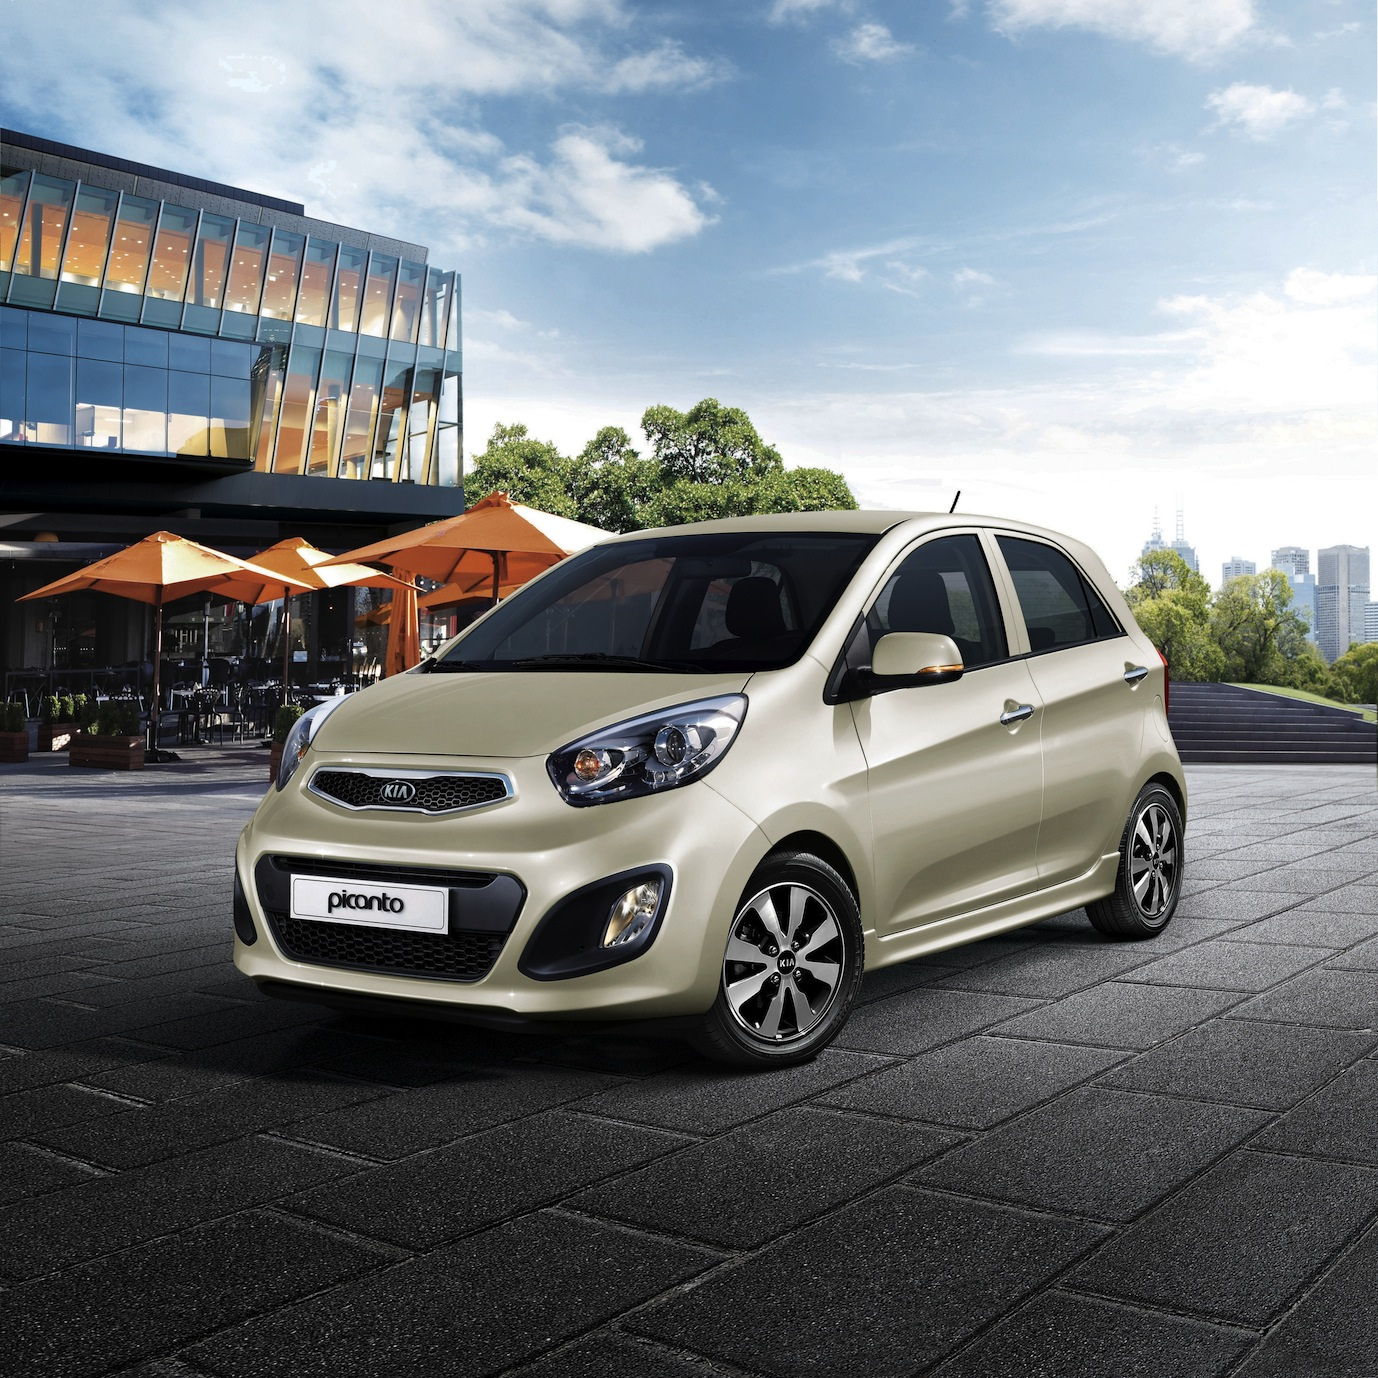 kia picanto 1 0 lpg erster kia in europa mit autogasanlage ab werk autocreative. Black Bedroom Furniture Sets. Home Design Ideas